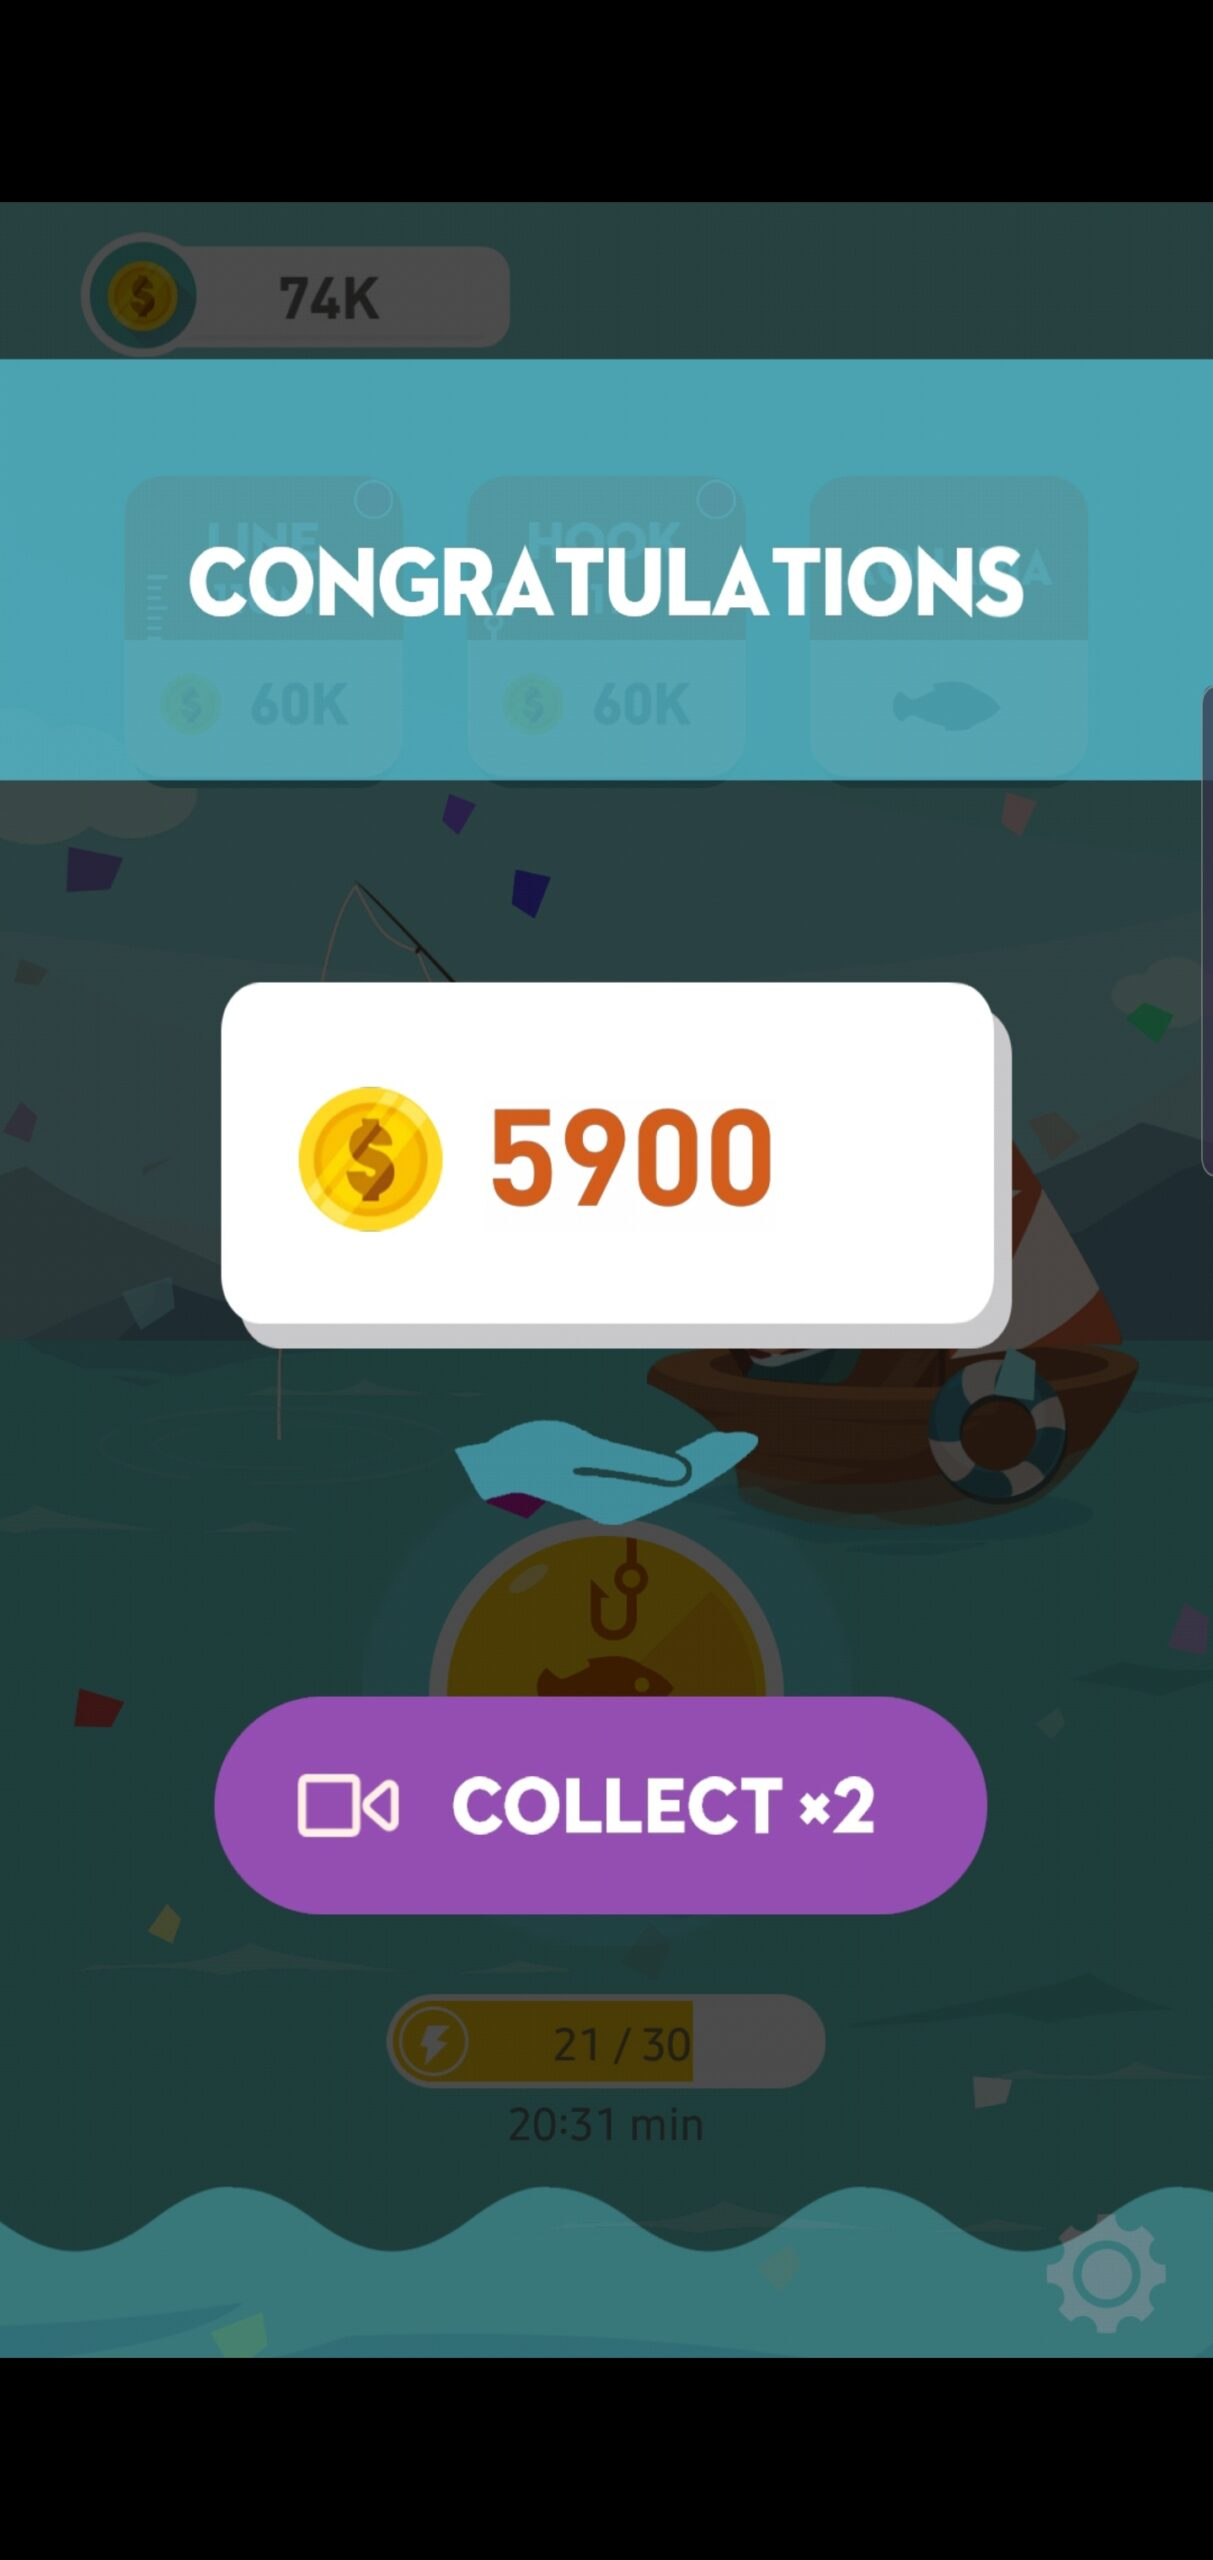 5900 Coins Credited